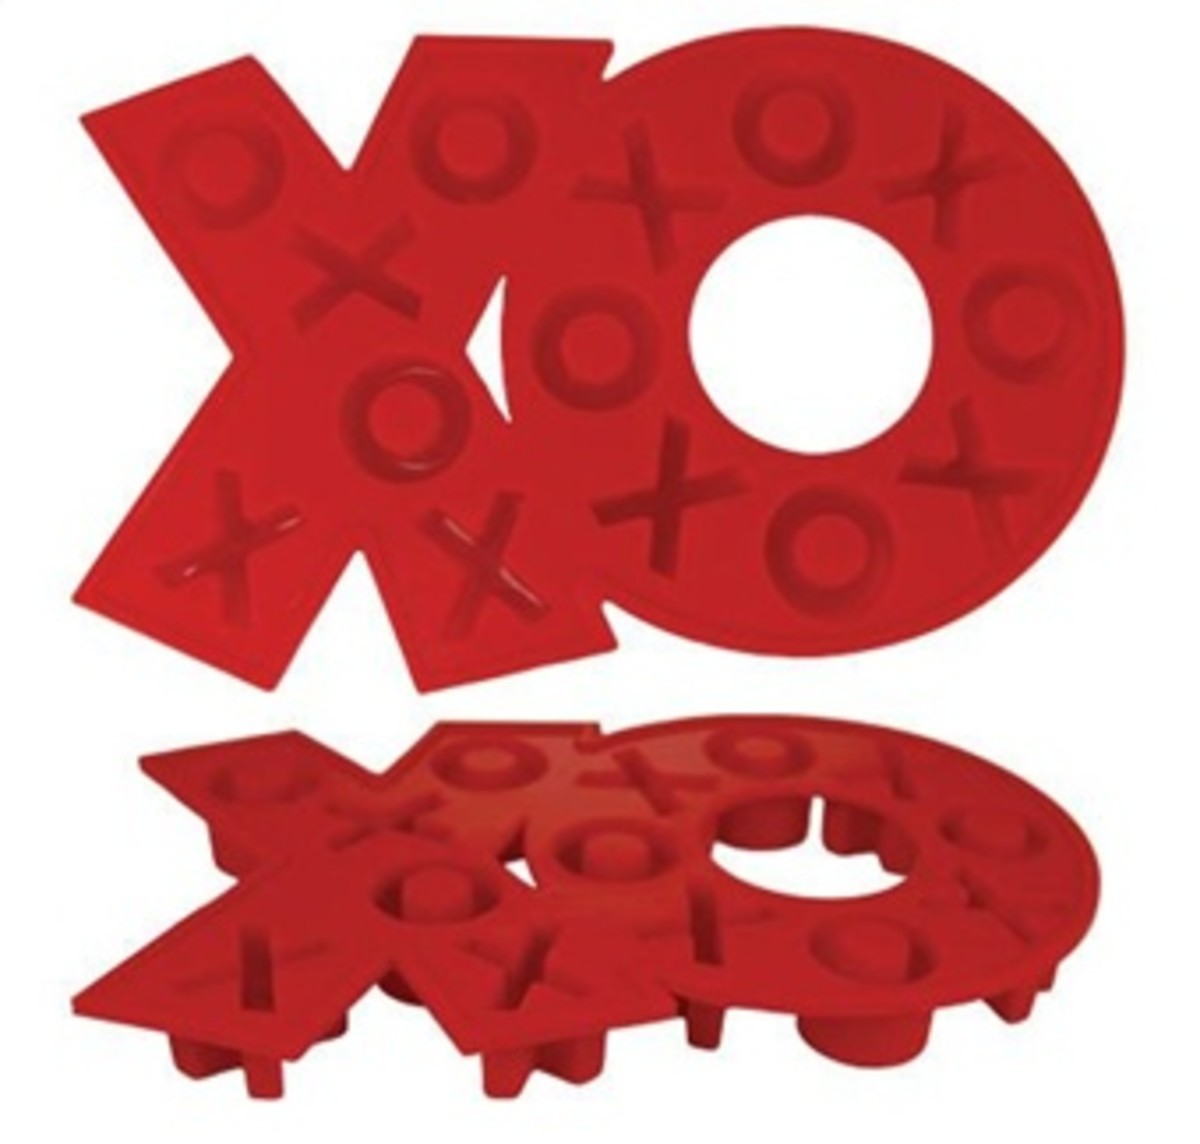 XOXO in greetings and messages